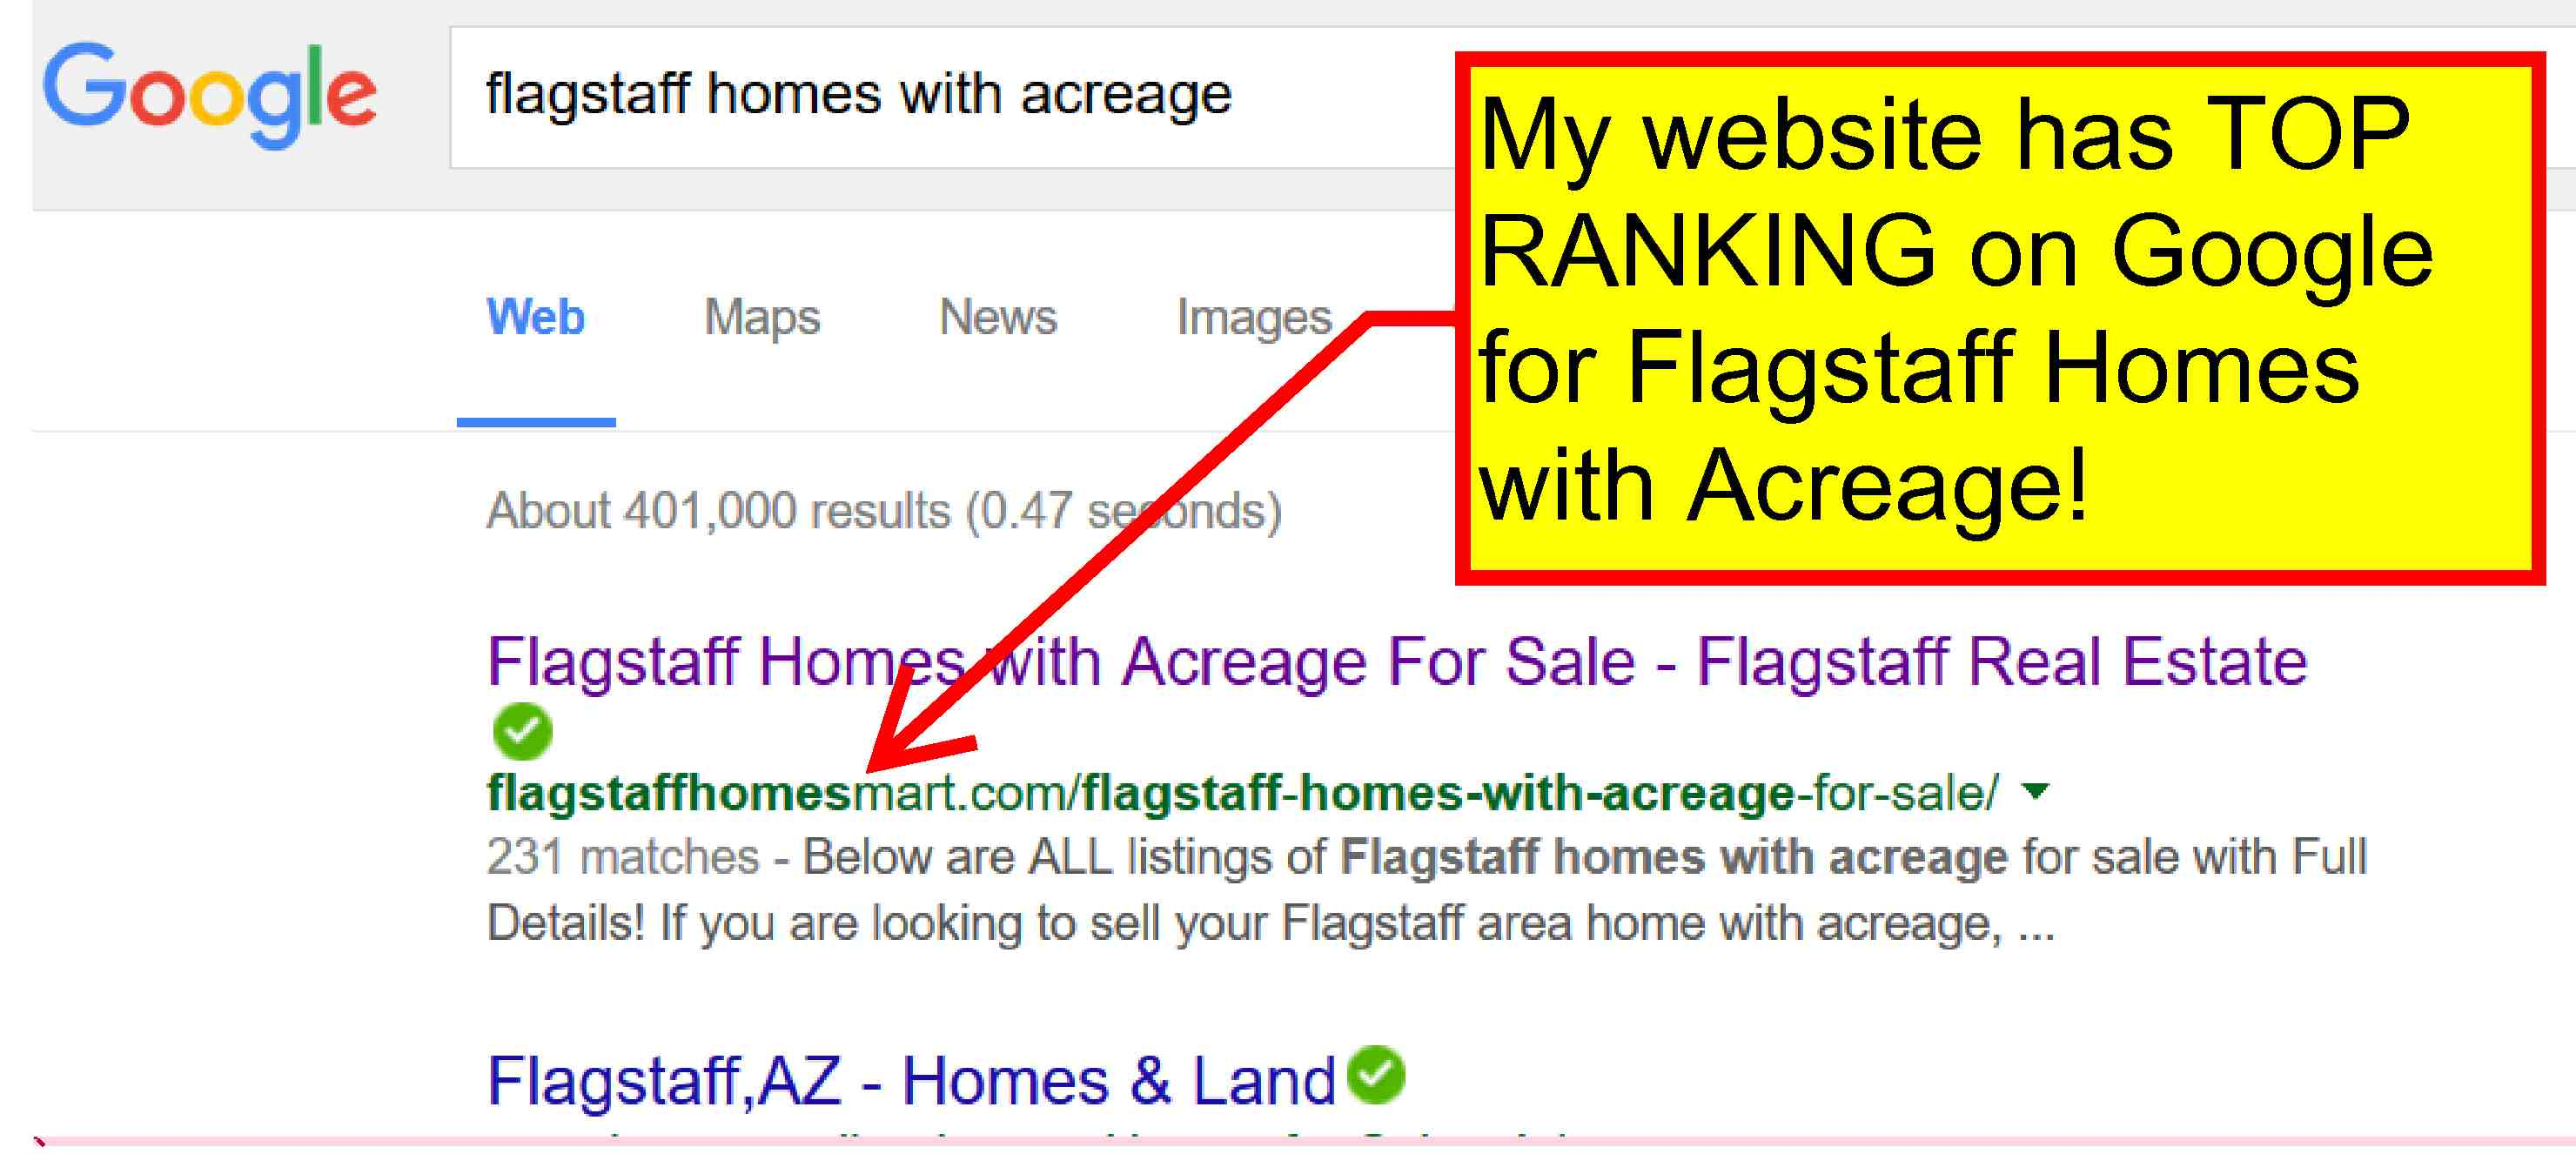 My website has EARNED TOP RANKING on Google for many real estate property searches!